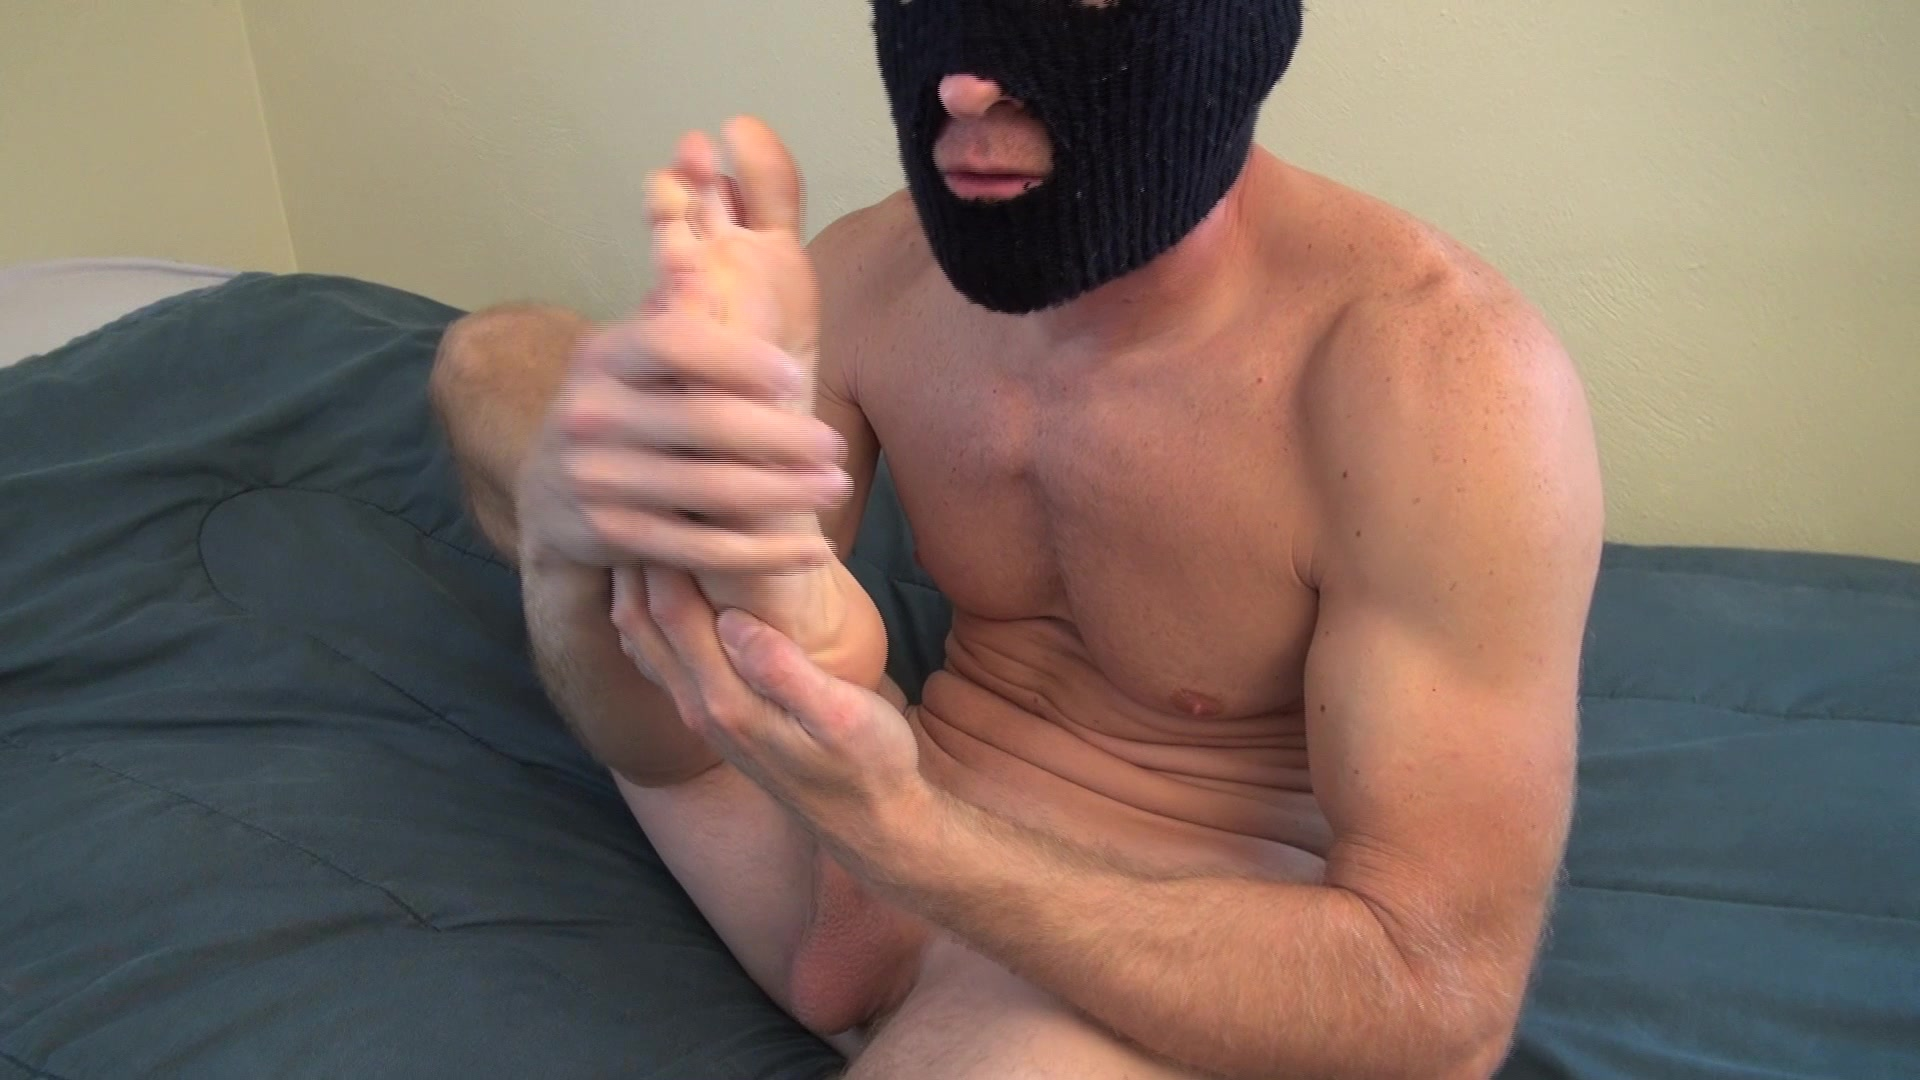 feet,,foot,,soles,,sexy,,hot,,male,,boy,,gay,,bi,,hard,,ass,,dick,,penis,,legs,solo,male,,hd